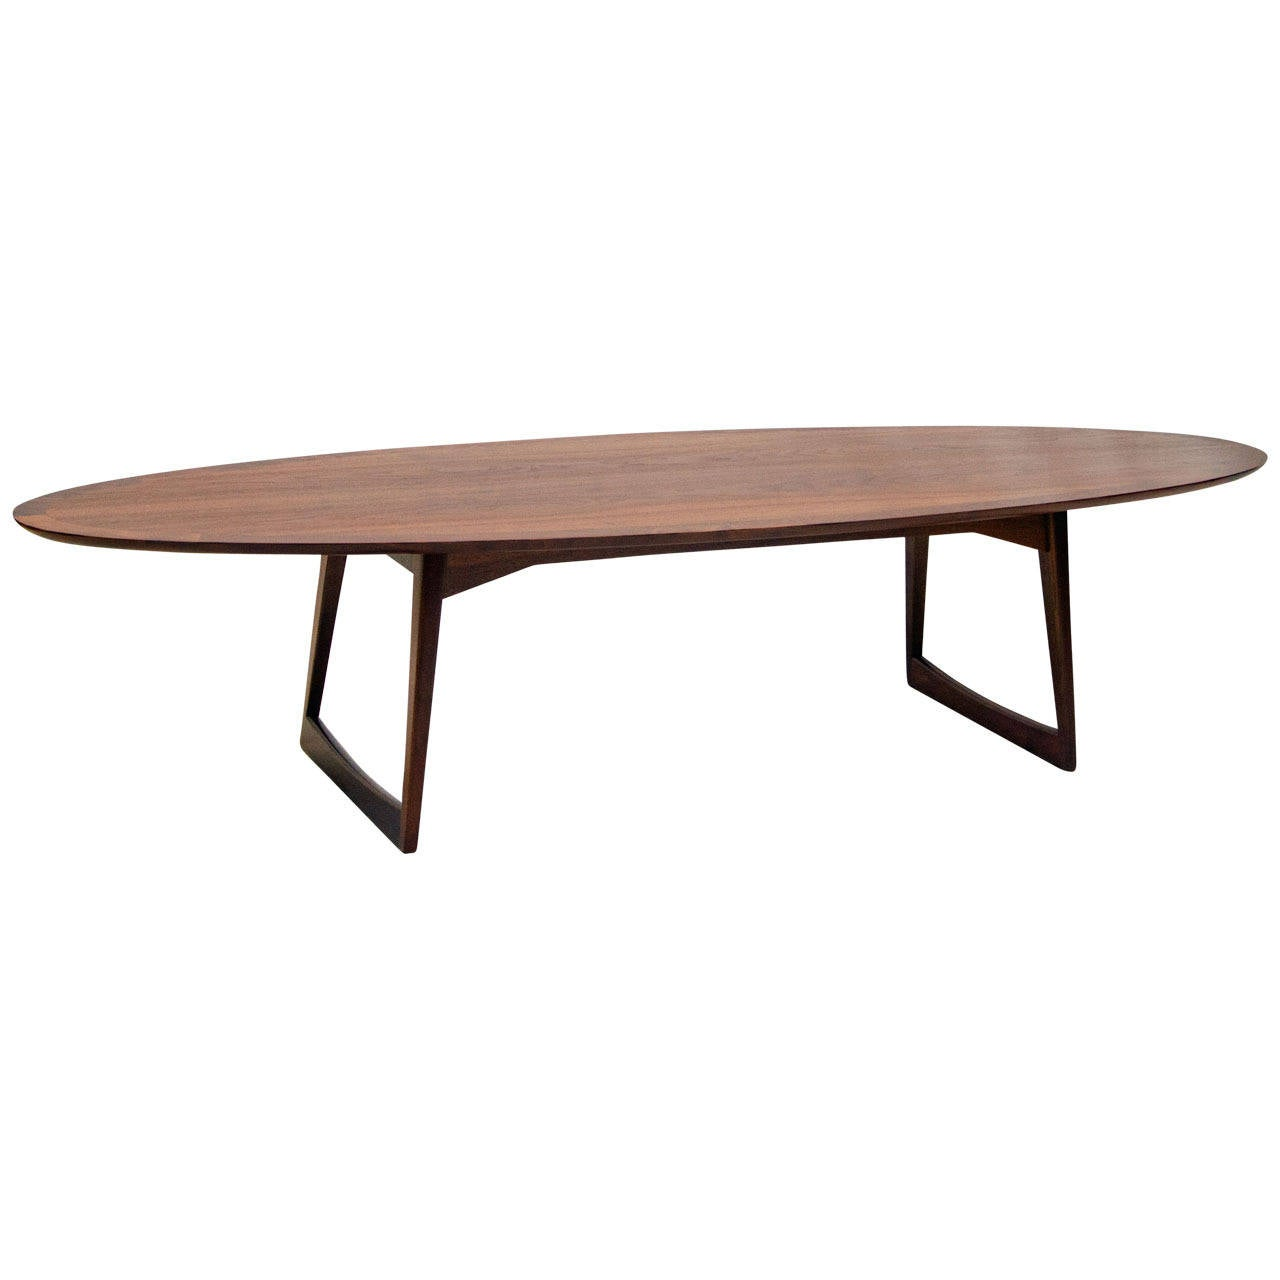 Surfboard Tables For Sale Mid Century Walnut Surfboard Coffee Table Mm Moreddi At